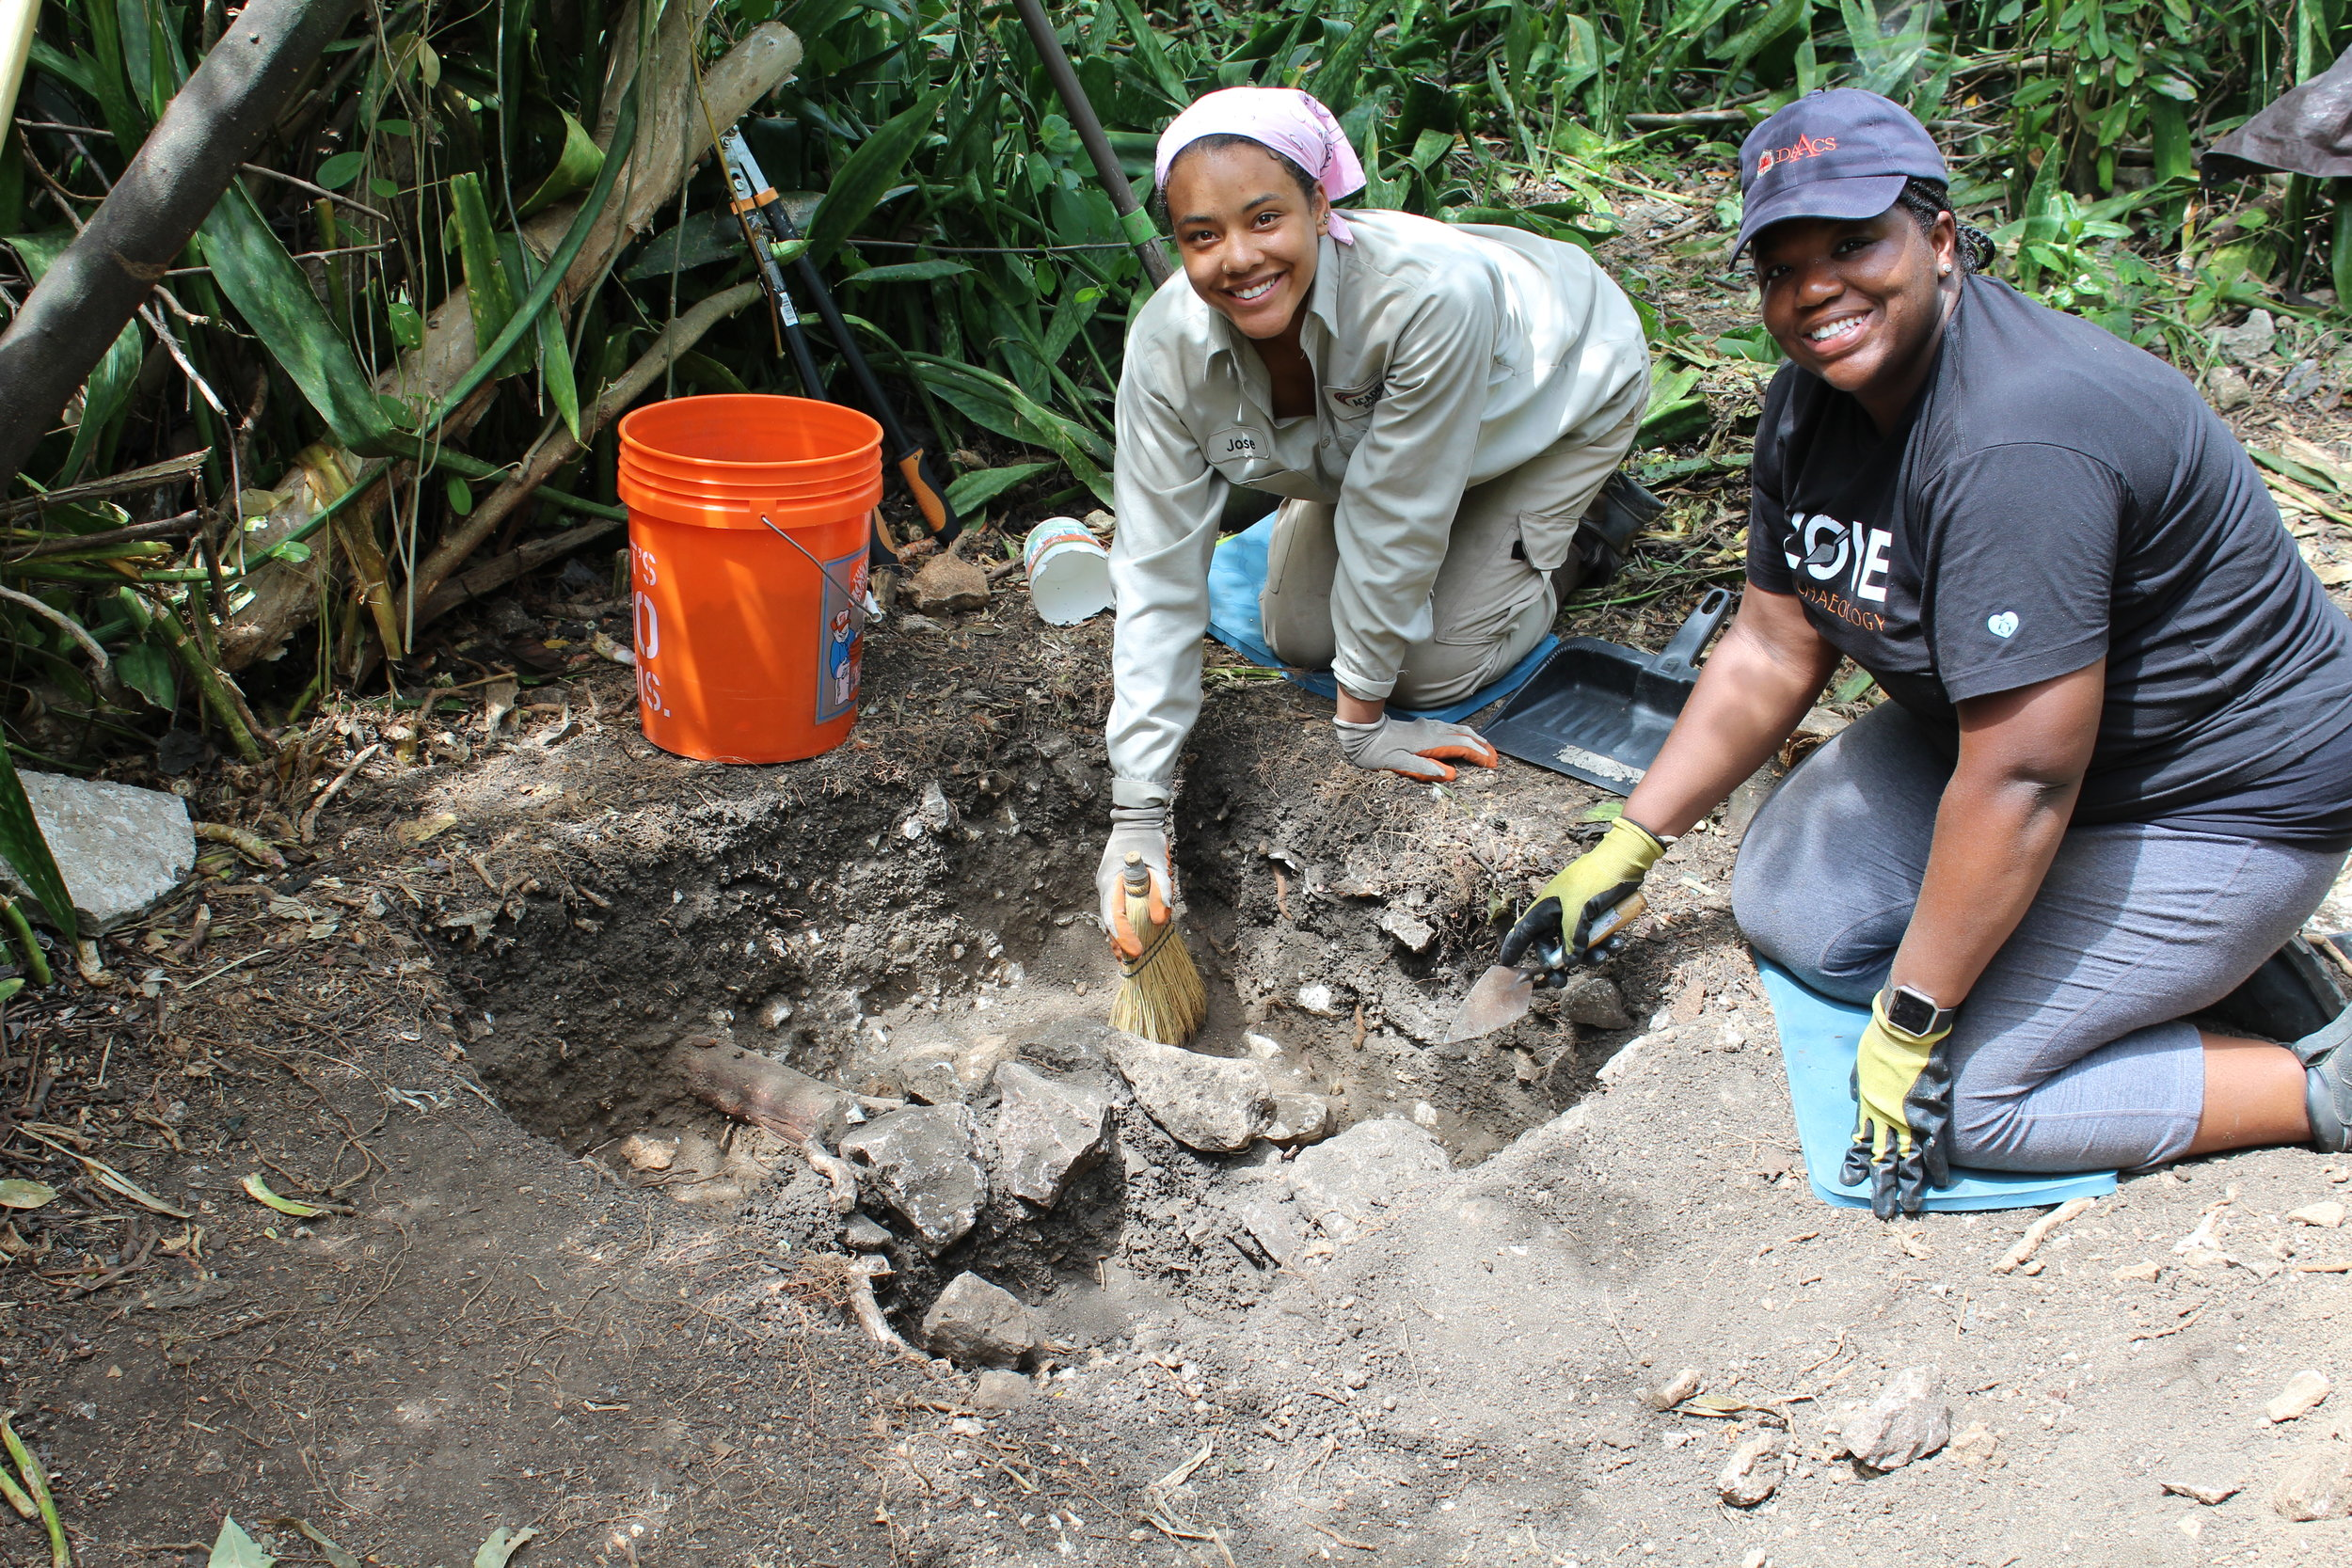 Dr. Alicia Odewale, assistant professor at the Tulsa University, and Jewel Humphrey, undergraduate student from Howard University excavating at the Estate Little Princess.